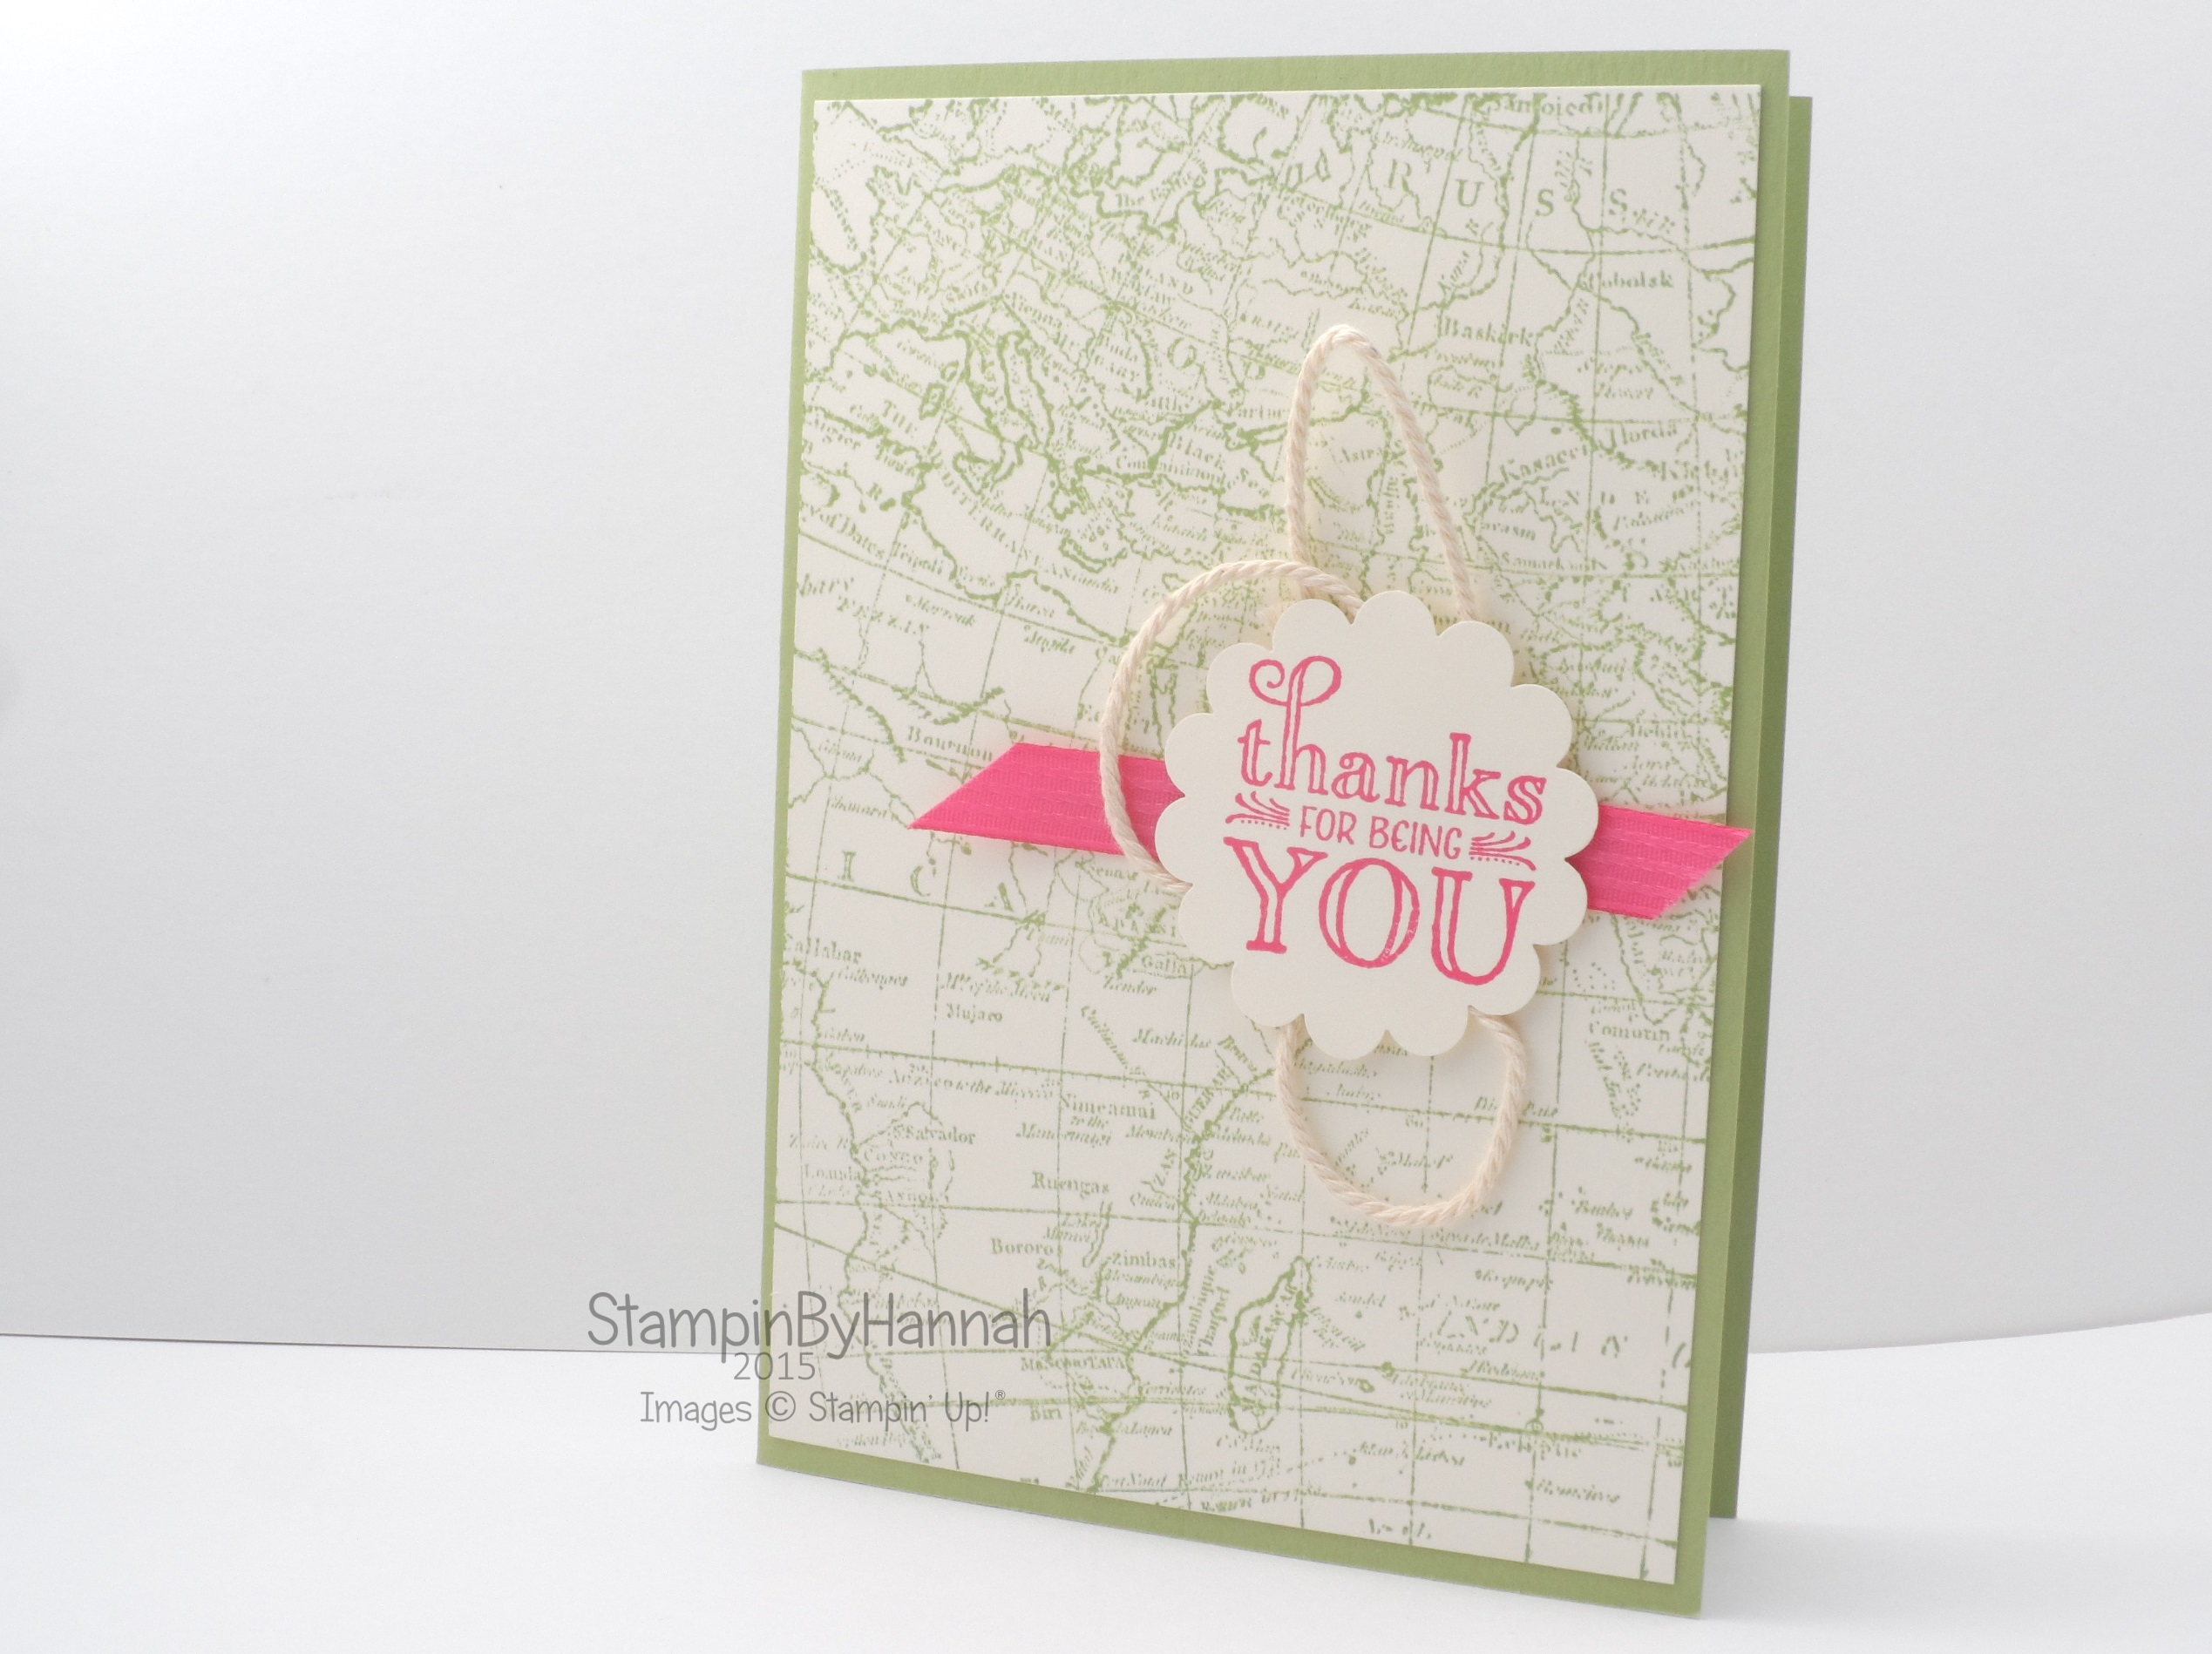 Thanks for being you stampinbyhannah stampin up uk demonstrator stampin up uk world map me grateful gumiabroncs Images